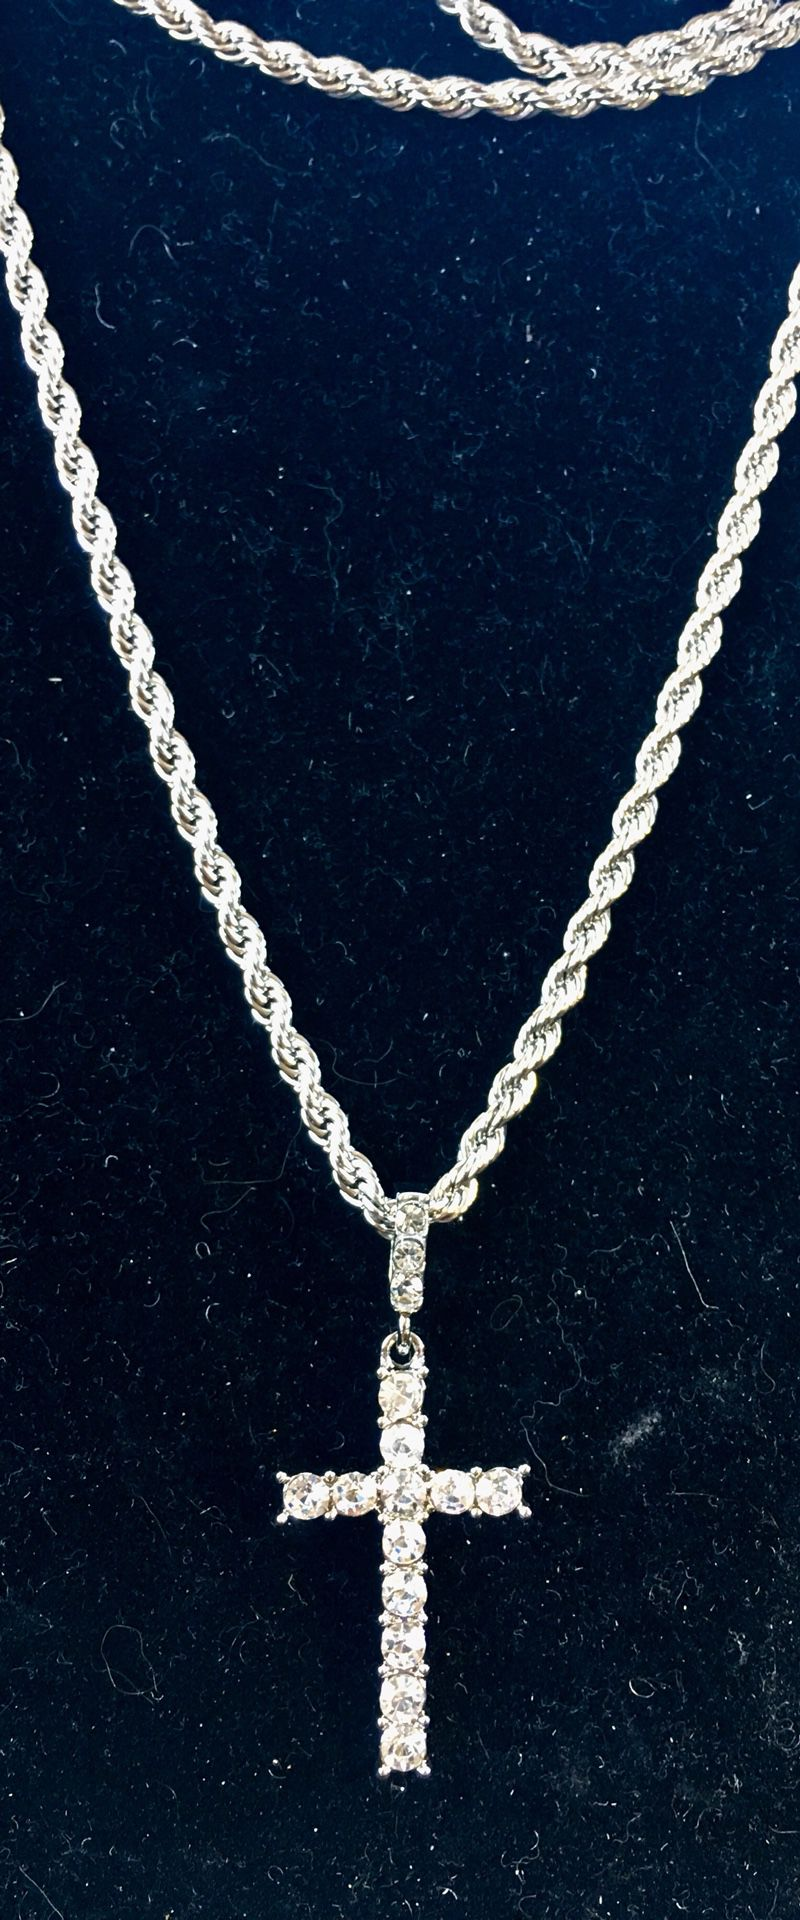 EXCLUSIVE CROSS 18K GOLD FULL DIAMONDS CZ NEW ROPE CHAIN MADE IN ITALY!